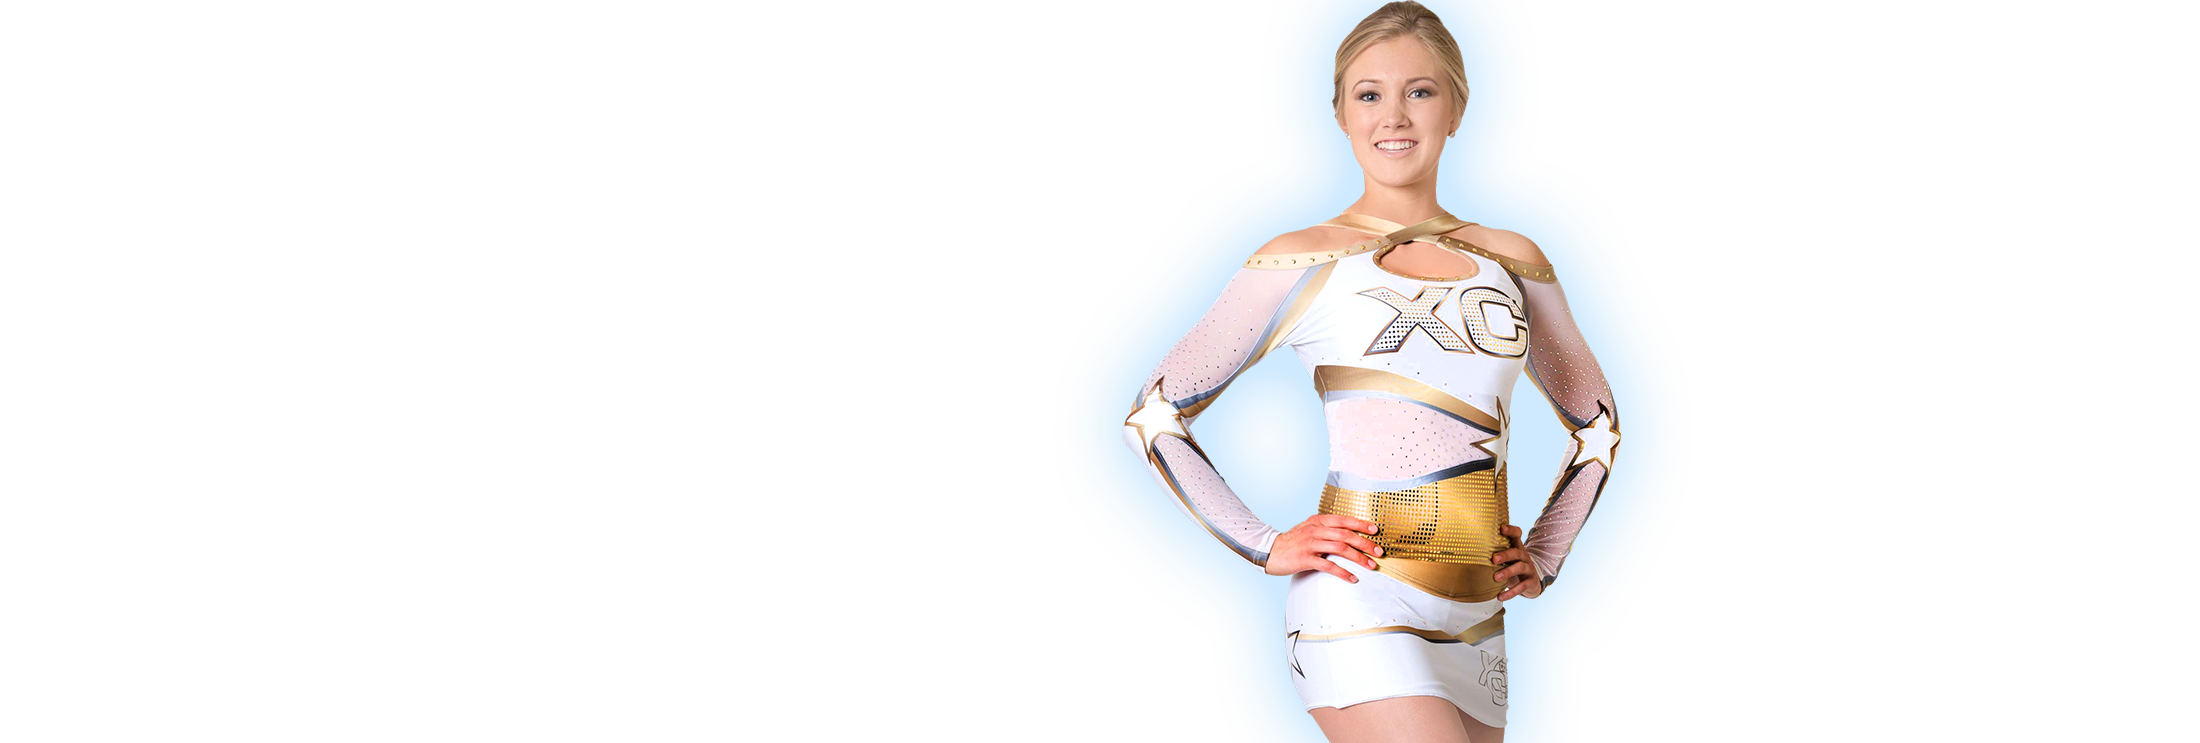 a616238af52 MEE Sports ‖ Custom Team Jackets ○ Sports Apparel ○ Uniforms ○ Warmup Suits  ○ Sublimation Sportswear   Custom Team Athletic Apparel For Cheerleading ...